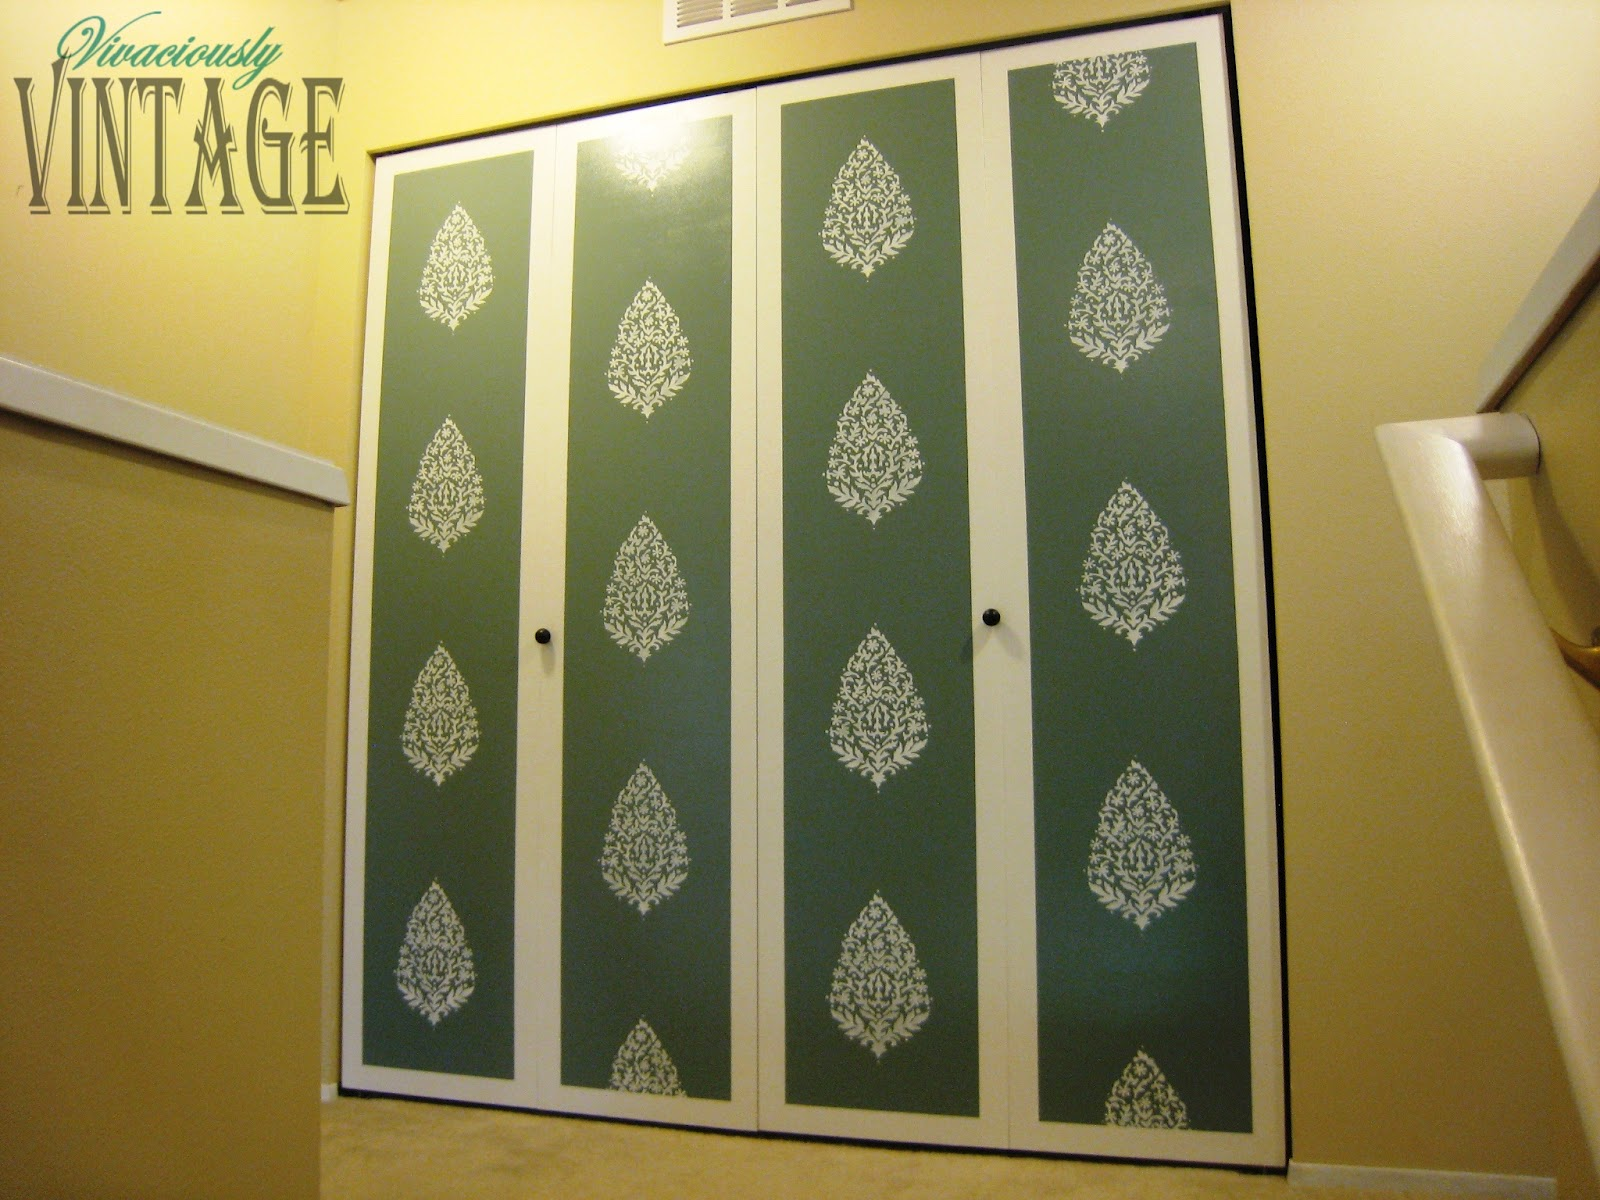 Vivaciously Vintage: Paisley Stenciled Laundry Room Doors